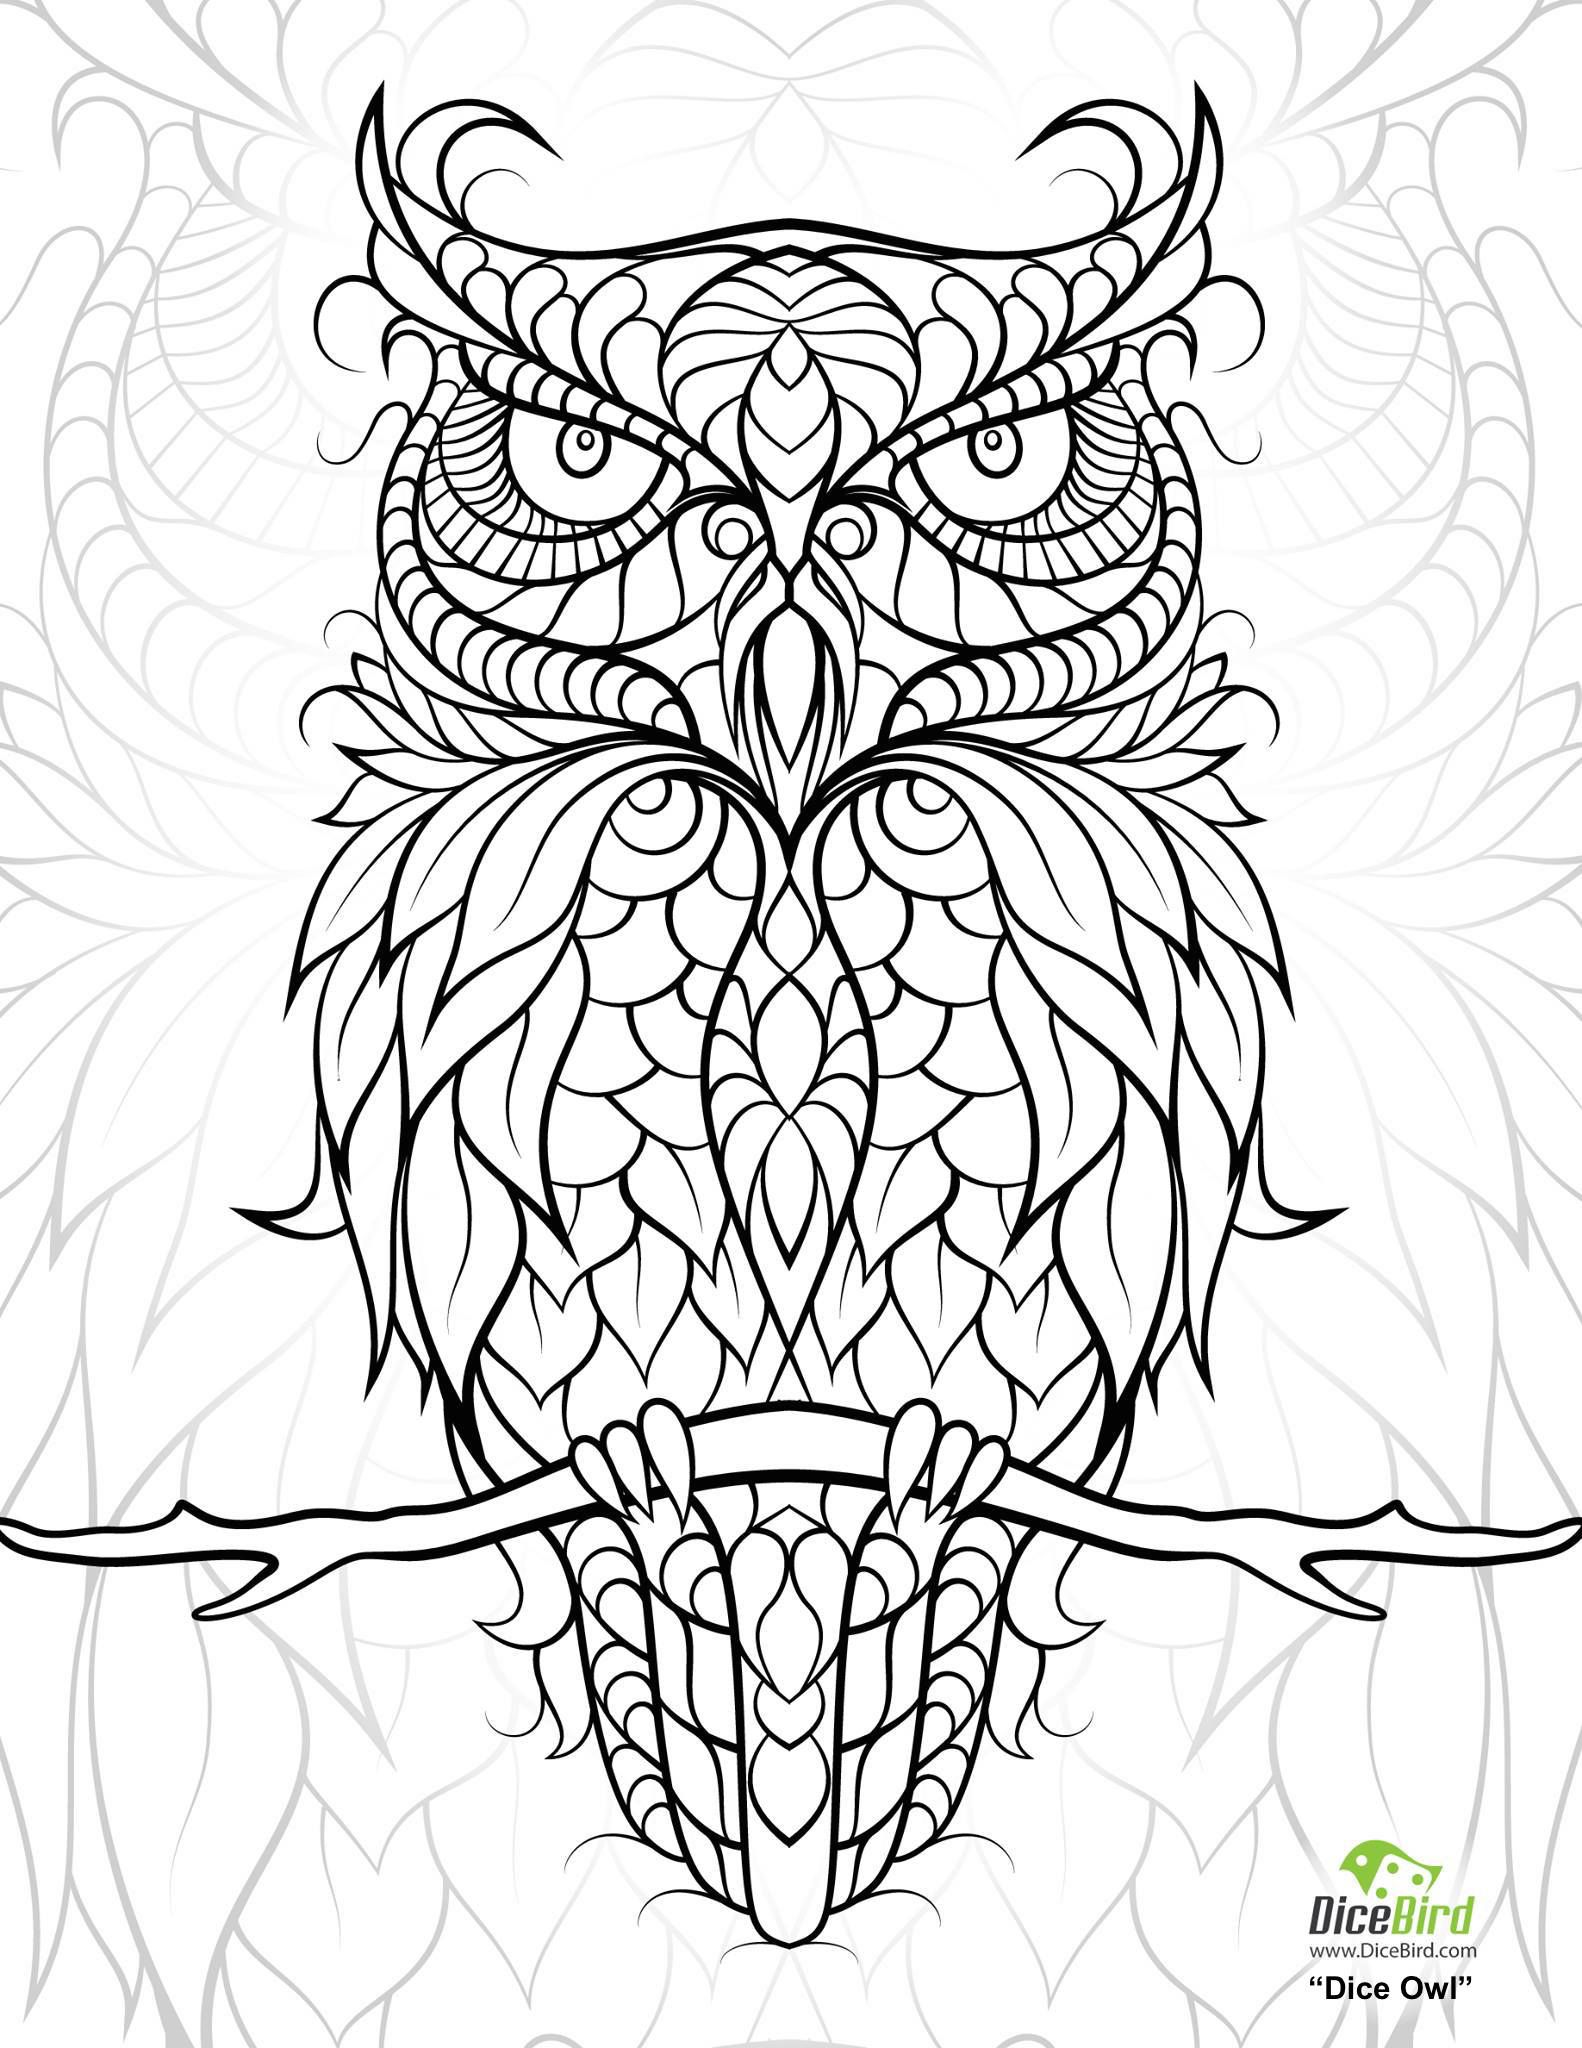 Colouring in for adults why - Diceowl Free Printable Adult Coloring Pages